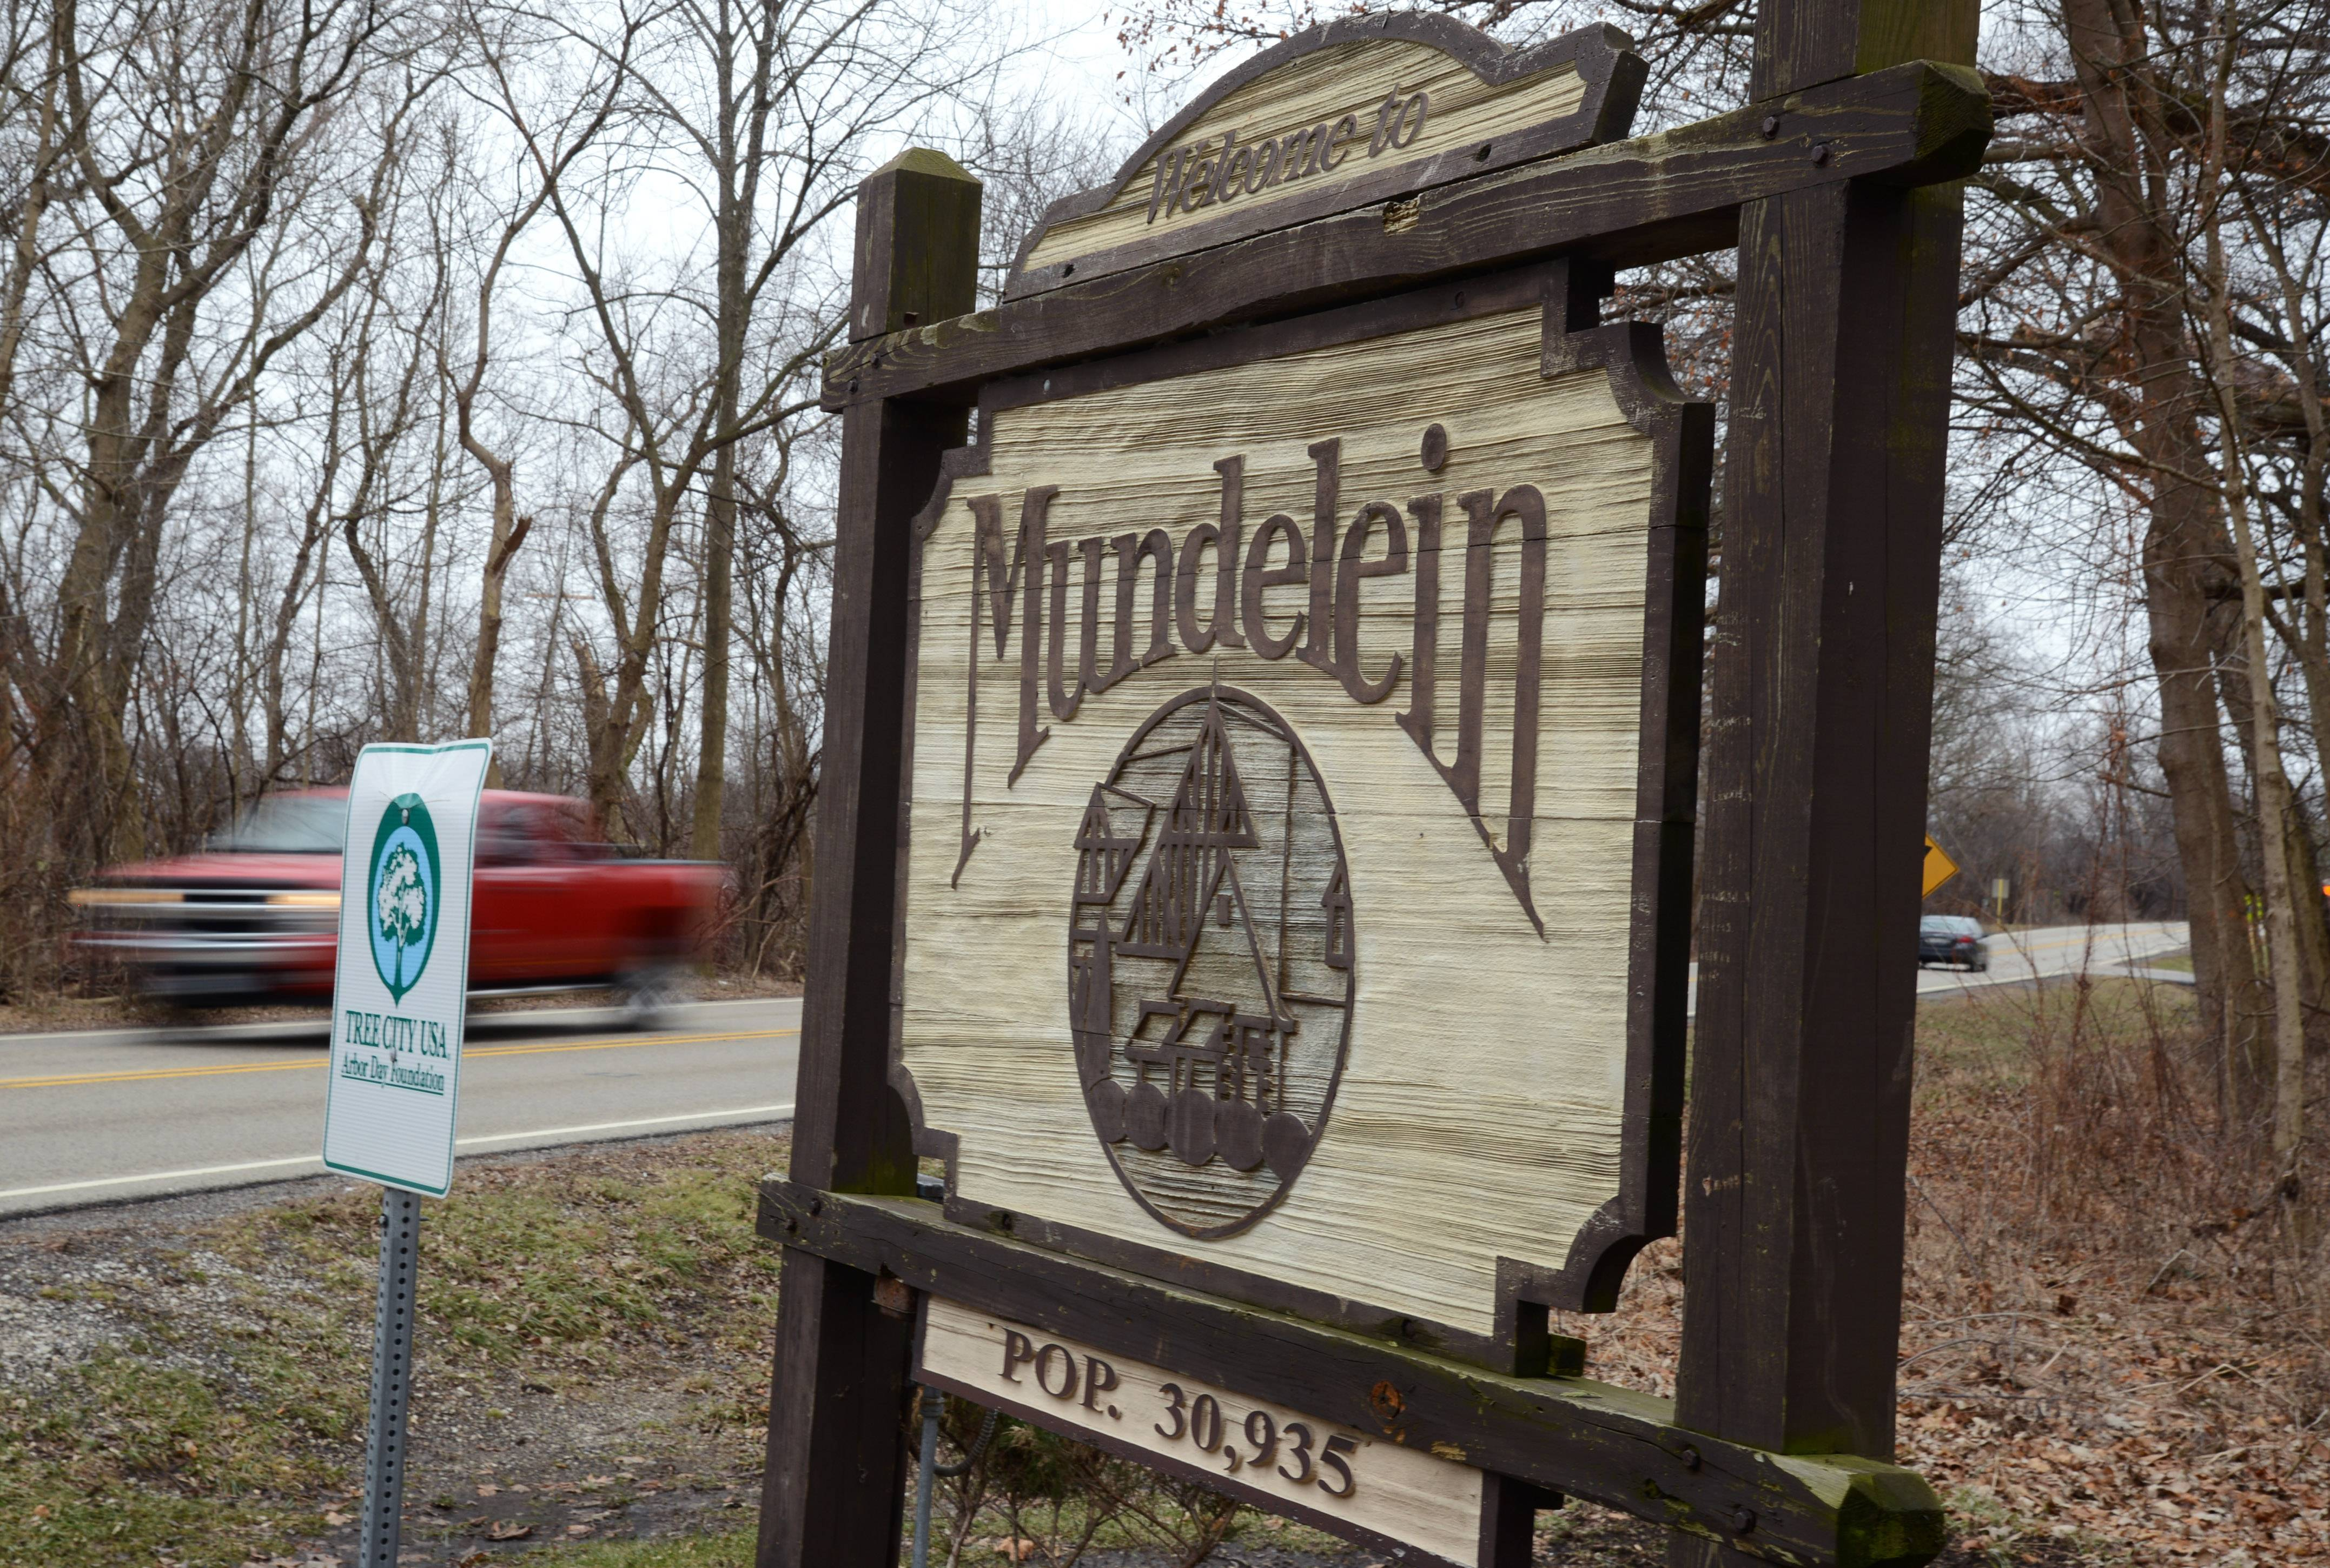 Mundelein residents can share their opinions on village services through a new online survey. Random residents will get phone calls about the survey as well.